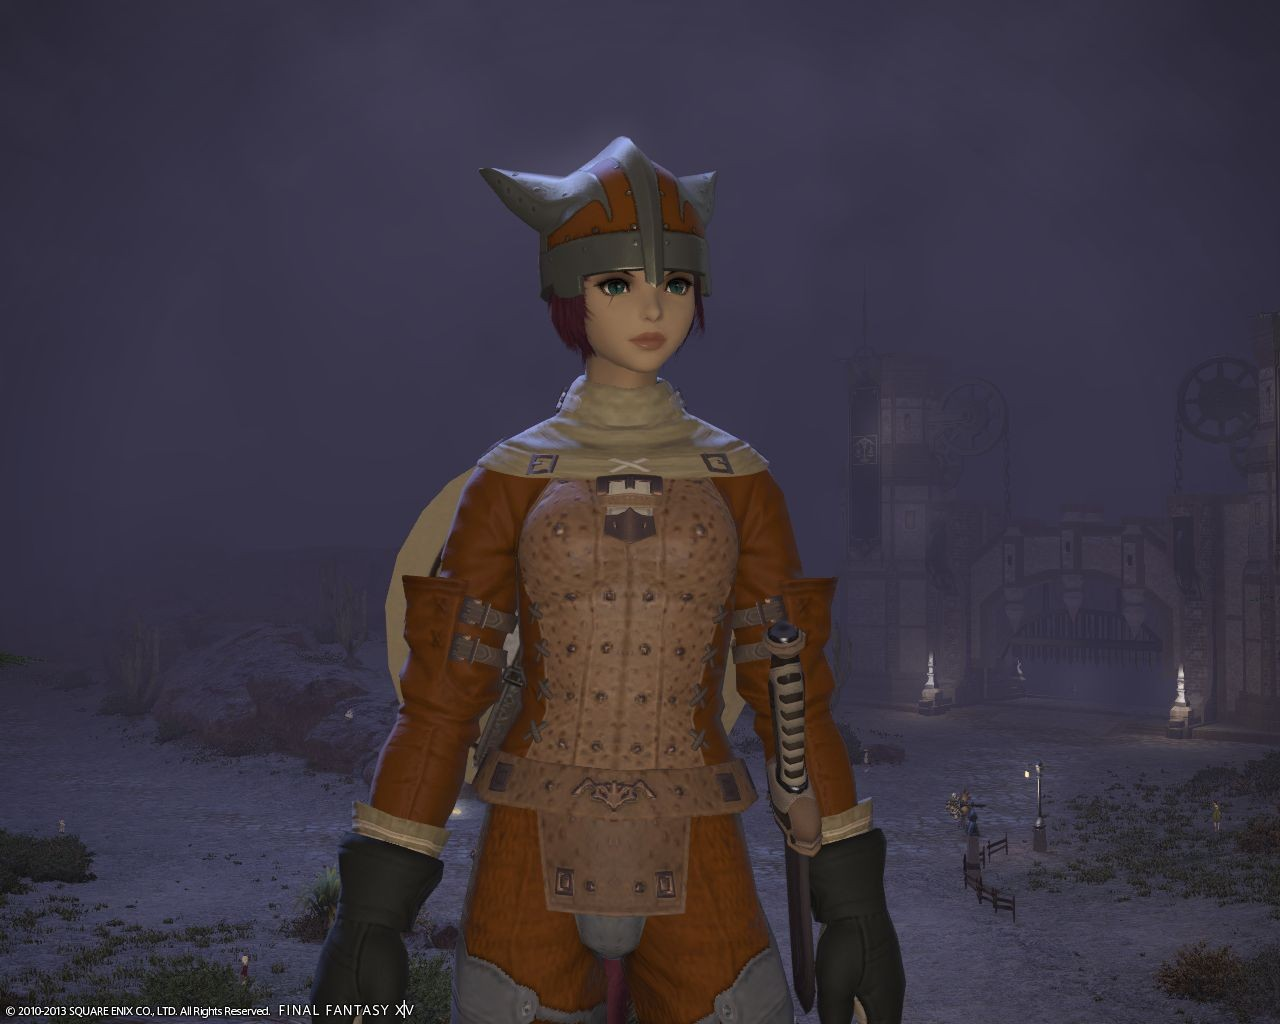 Final Fantasy XIV: A Realm Reborn - The Mist ..